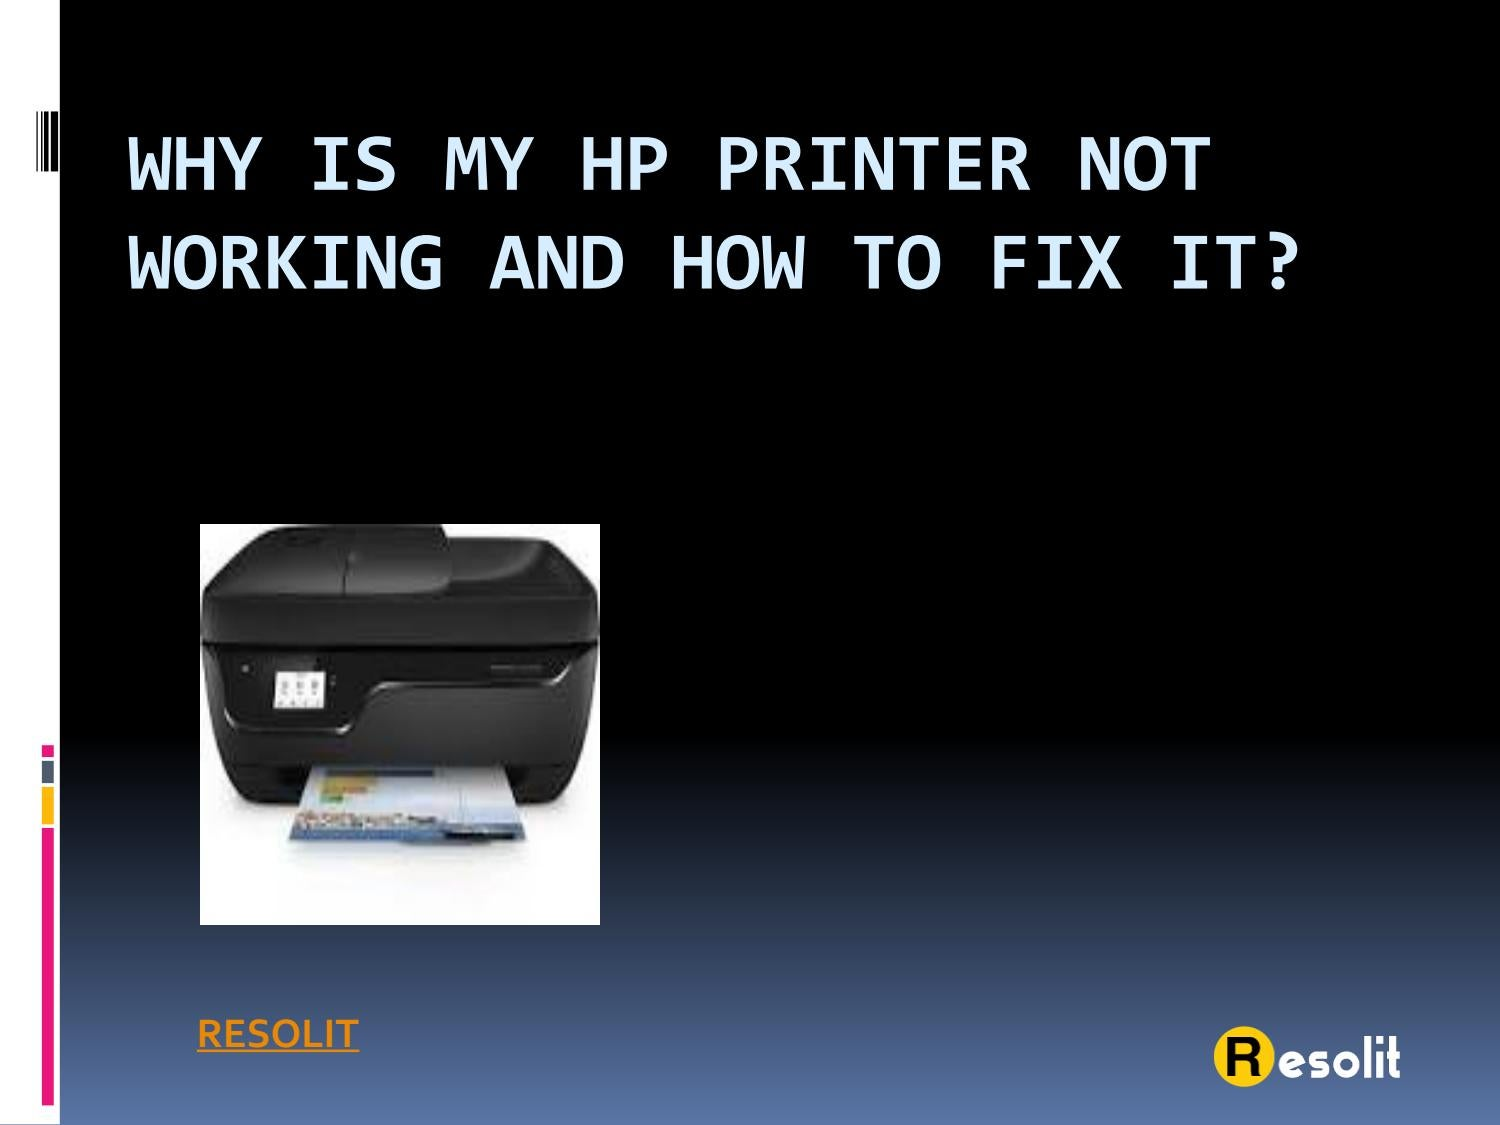 Why is my HP printer not working and how to fix it? by